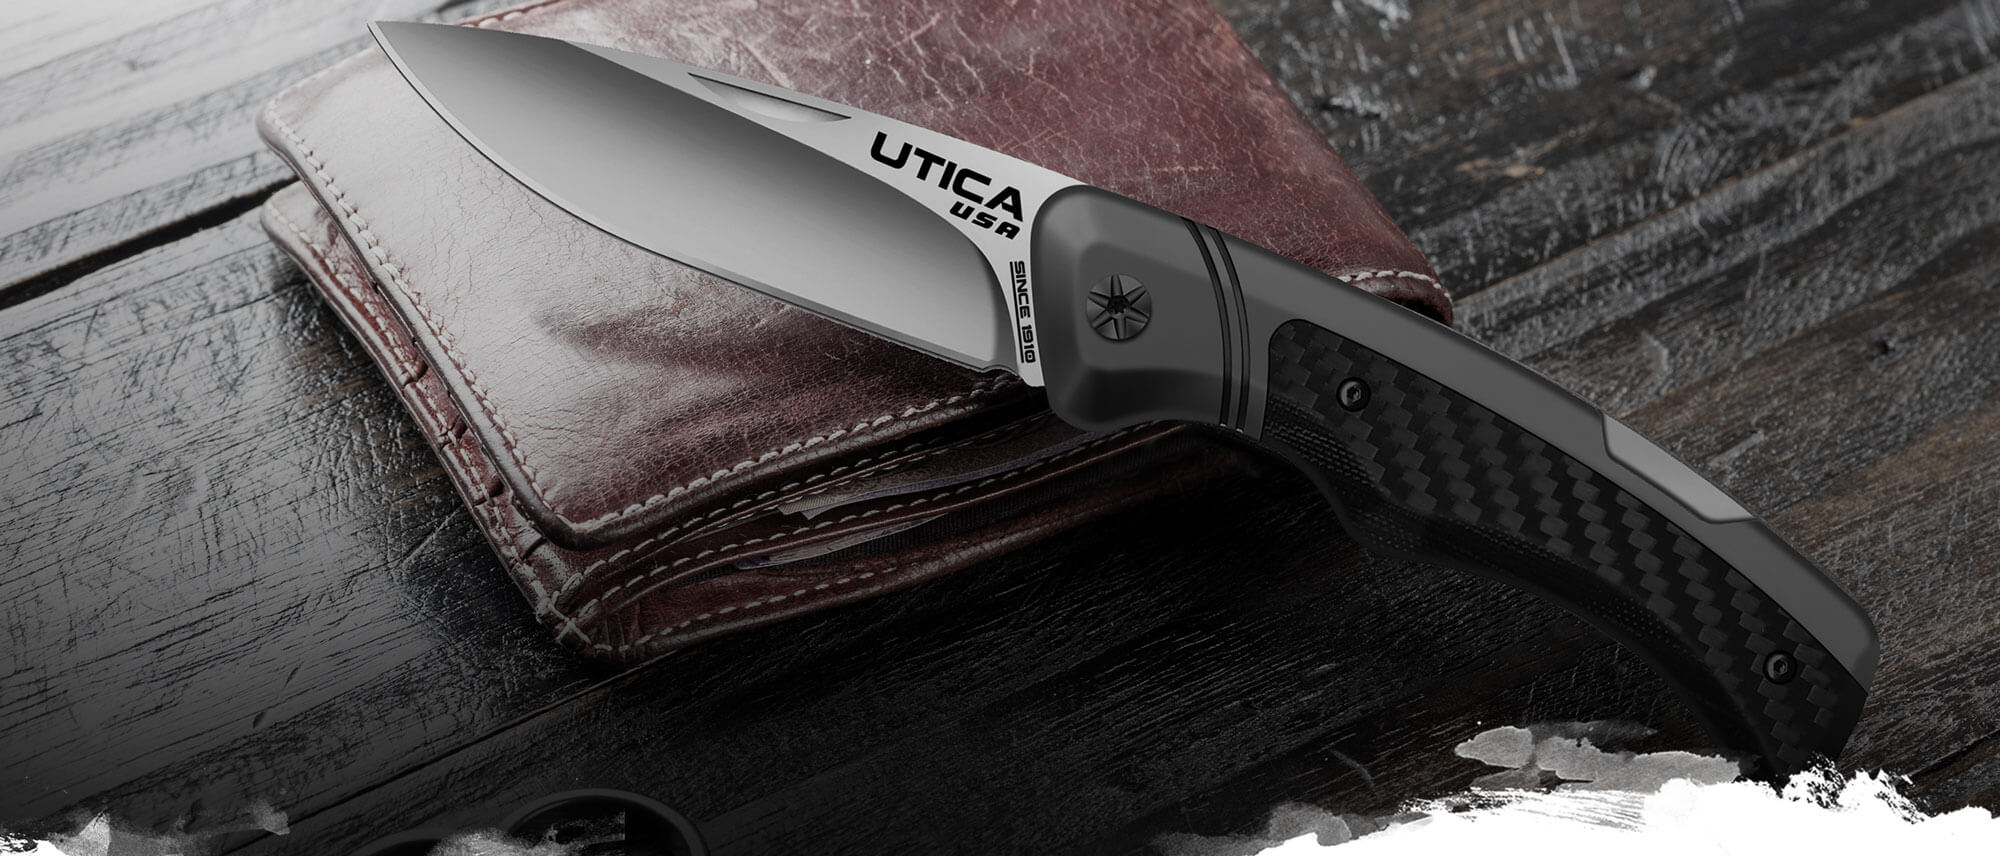 pocketknives folding knives - everyday carry knives by Utica USA